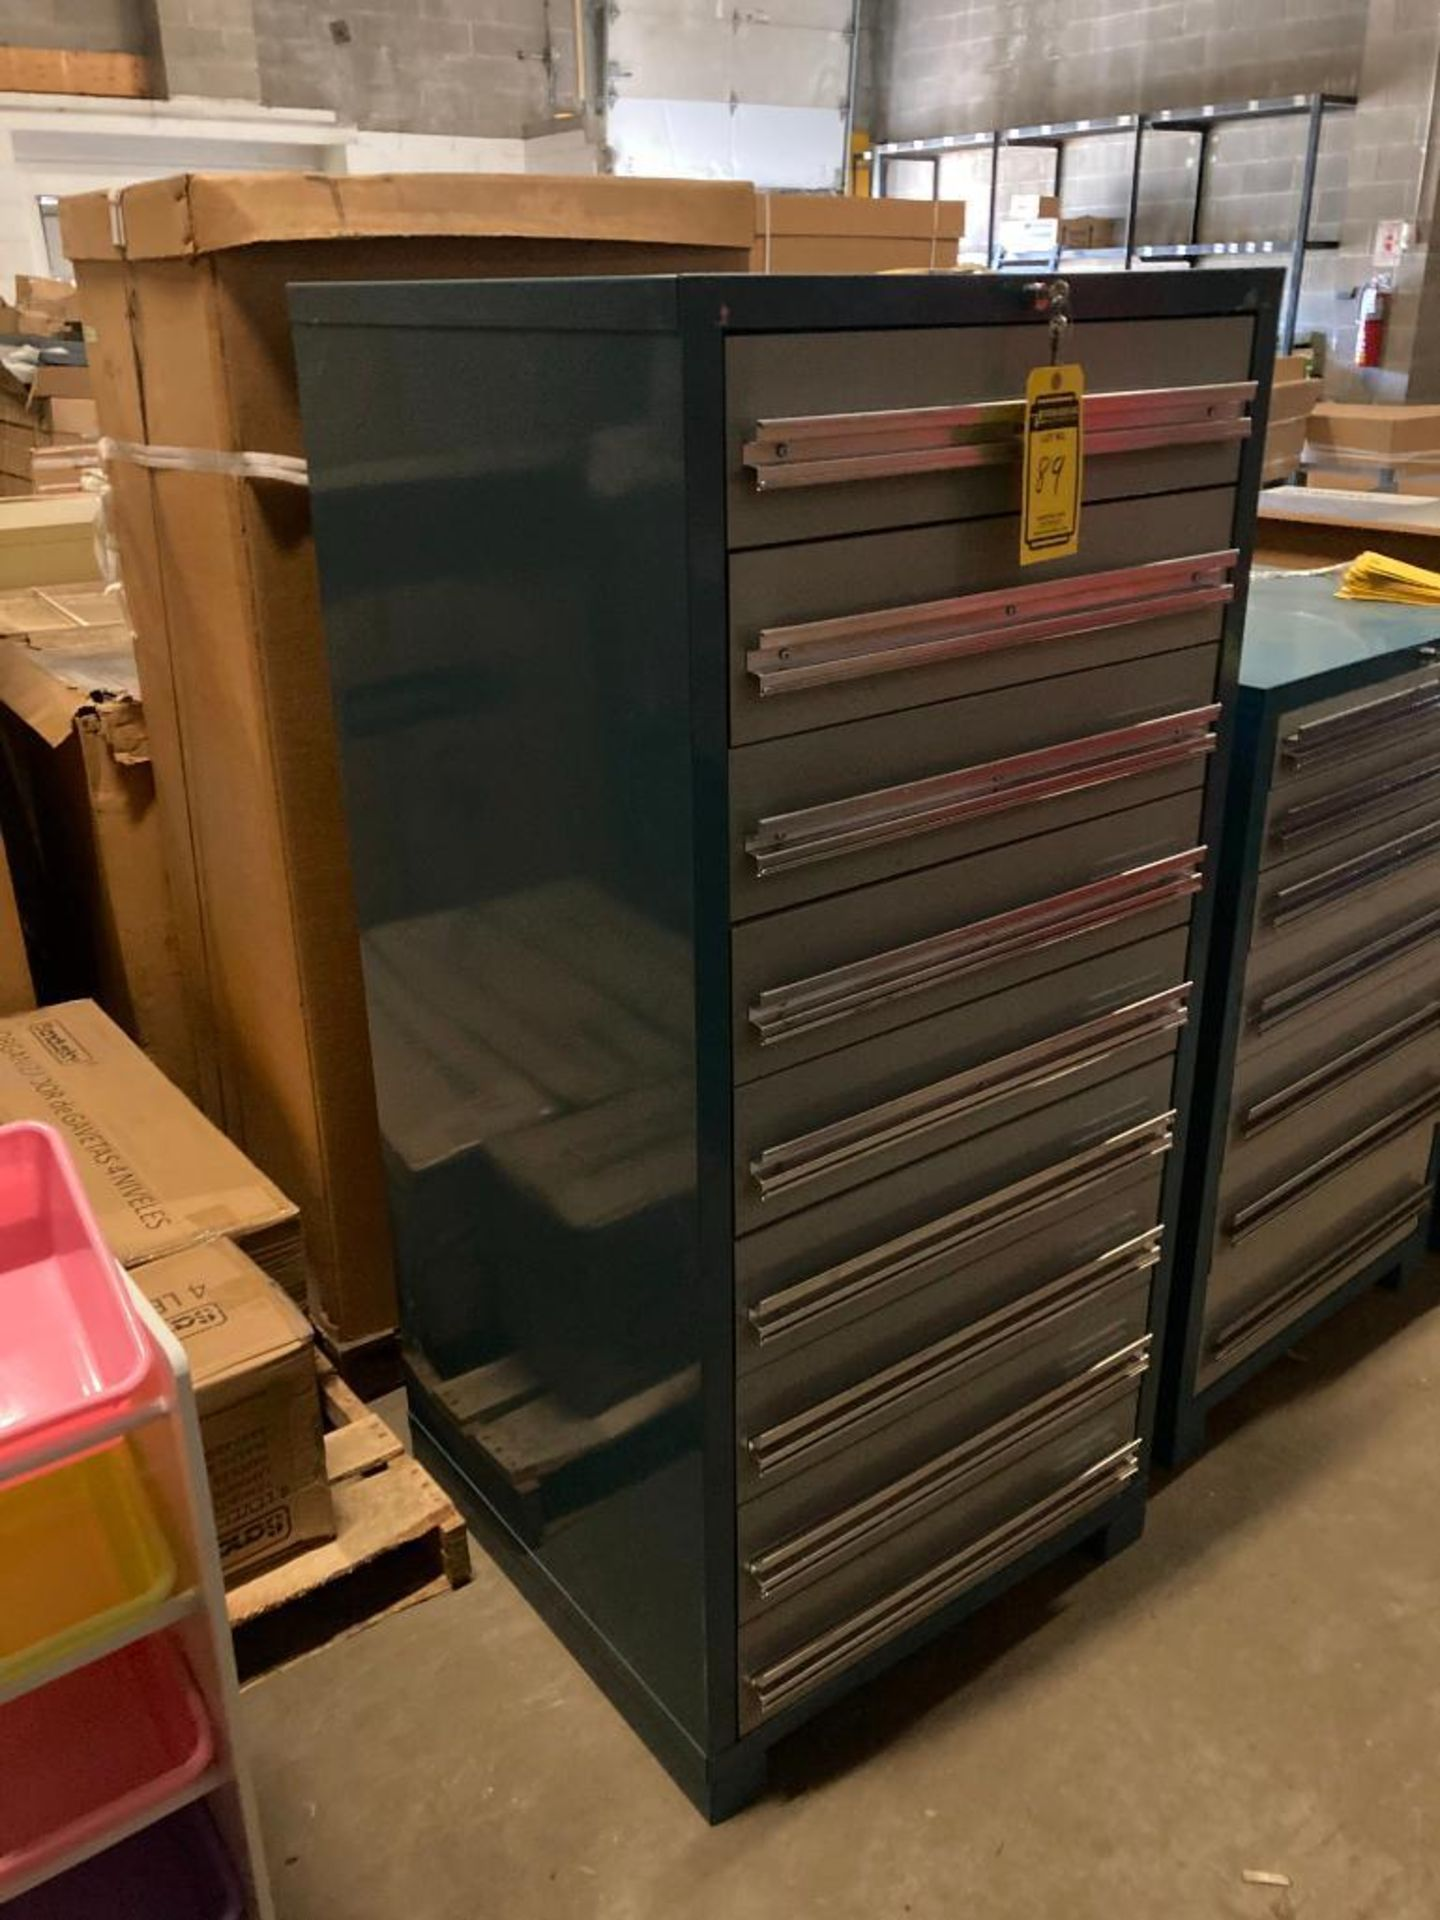 (2X) (NEW) EDSEL 9-DRAWER HEAVY DUTY MODULAR TOOLING CABINET; 28.25''W X 61.5''H X 28.25''D; MODEL M - Image 2 of 2